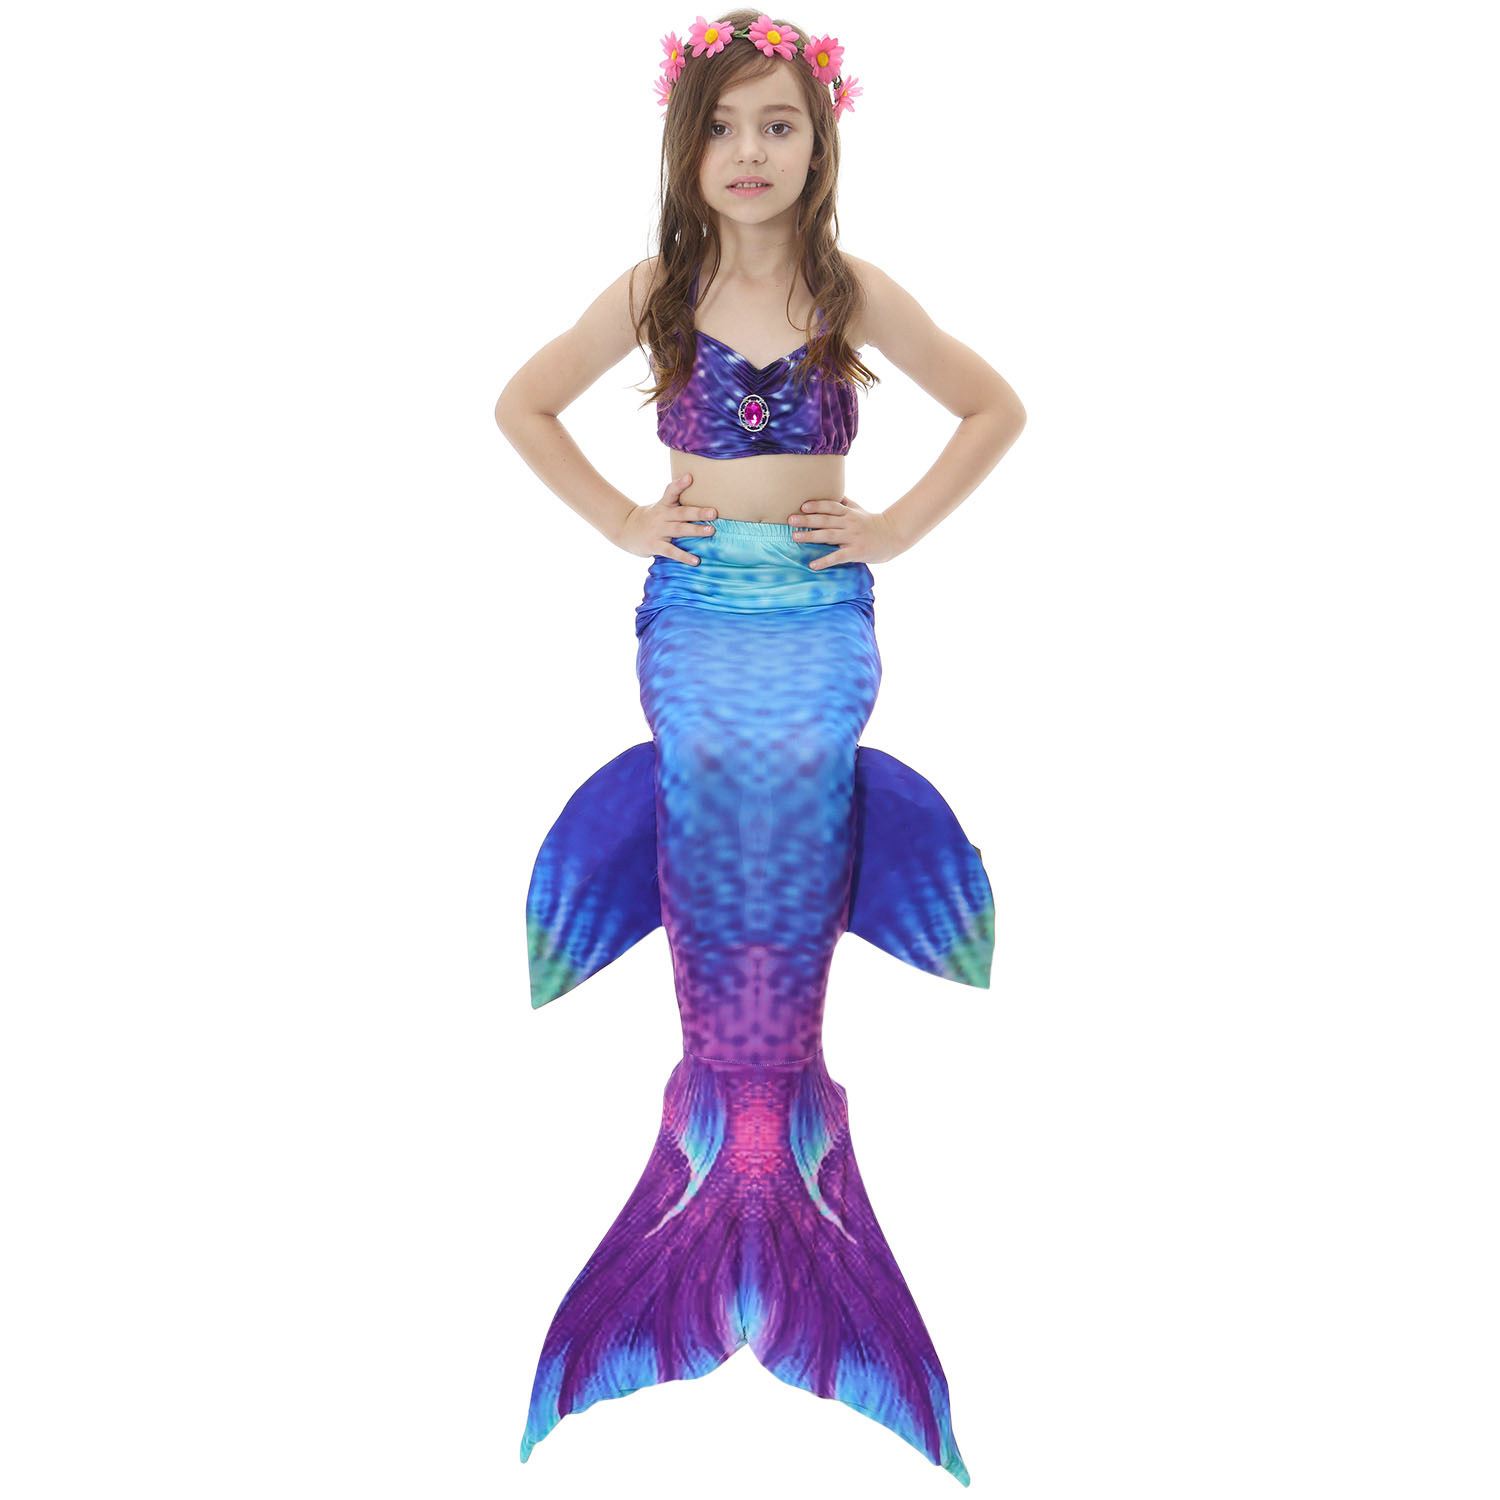 Sexy Mermaid Swimsuit Cute Girls Birthday Skirt Chest Pad Fishtail Summer Big Boy Insulated 2018 Parent And Child